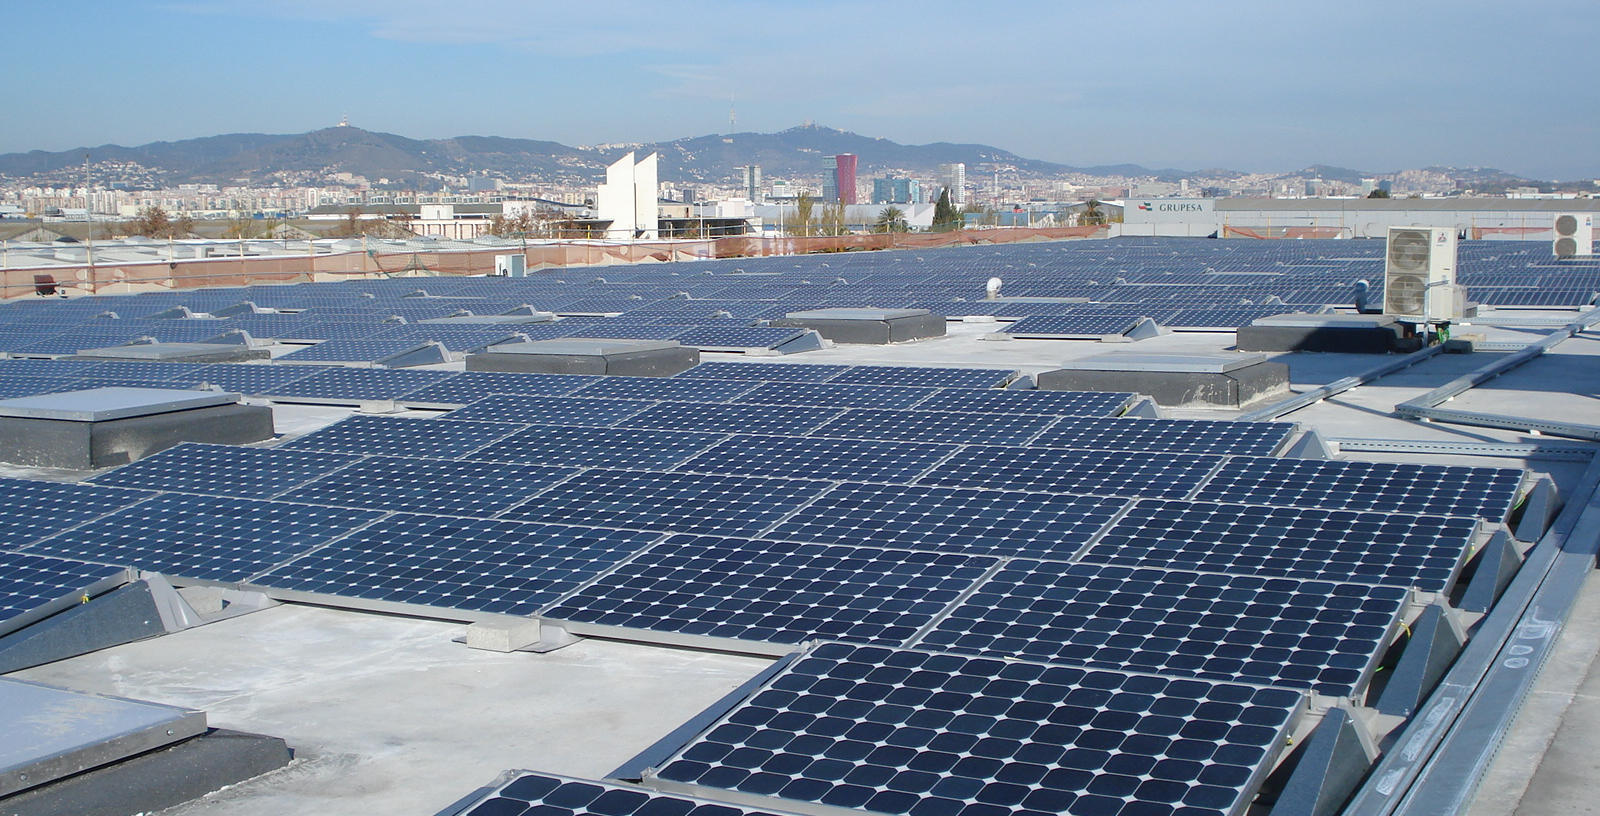 Technical_Due_Diligence_Rooftop_PV_Spain_Caja_Madrid_IDOM_004